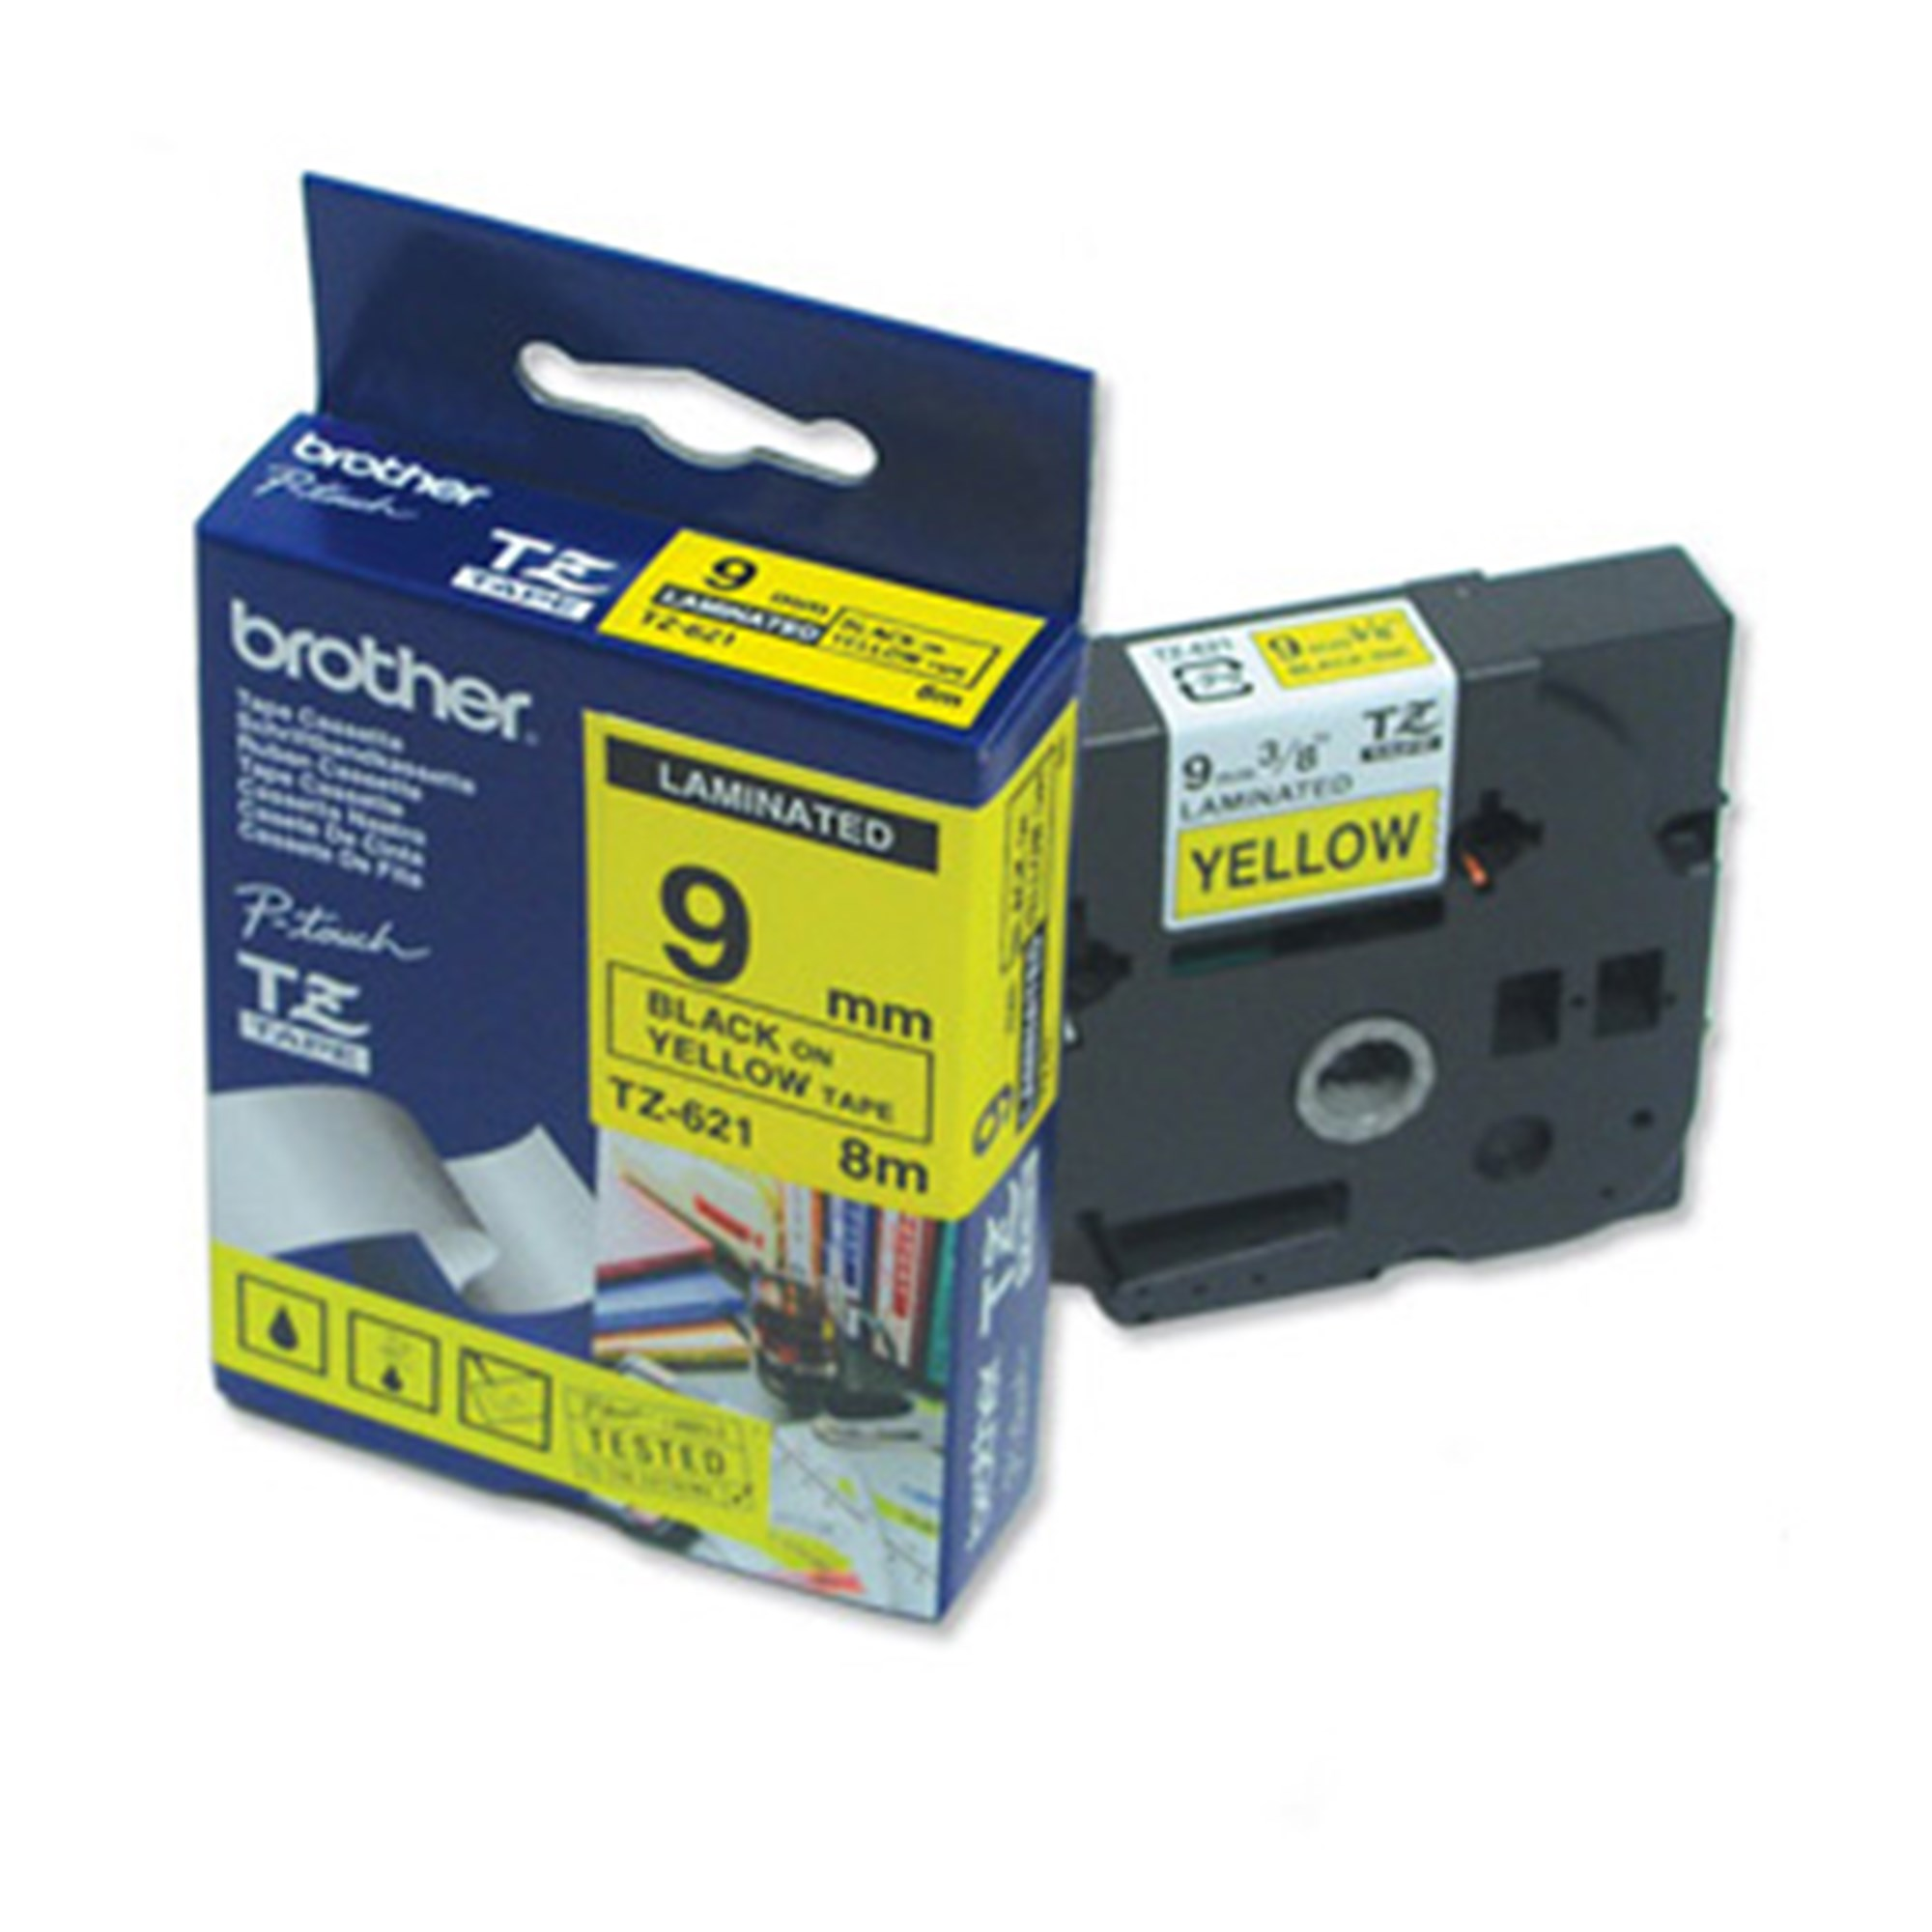 Image of   Brother TZe tape 9mmx8m black/yellow